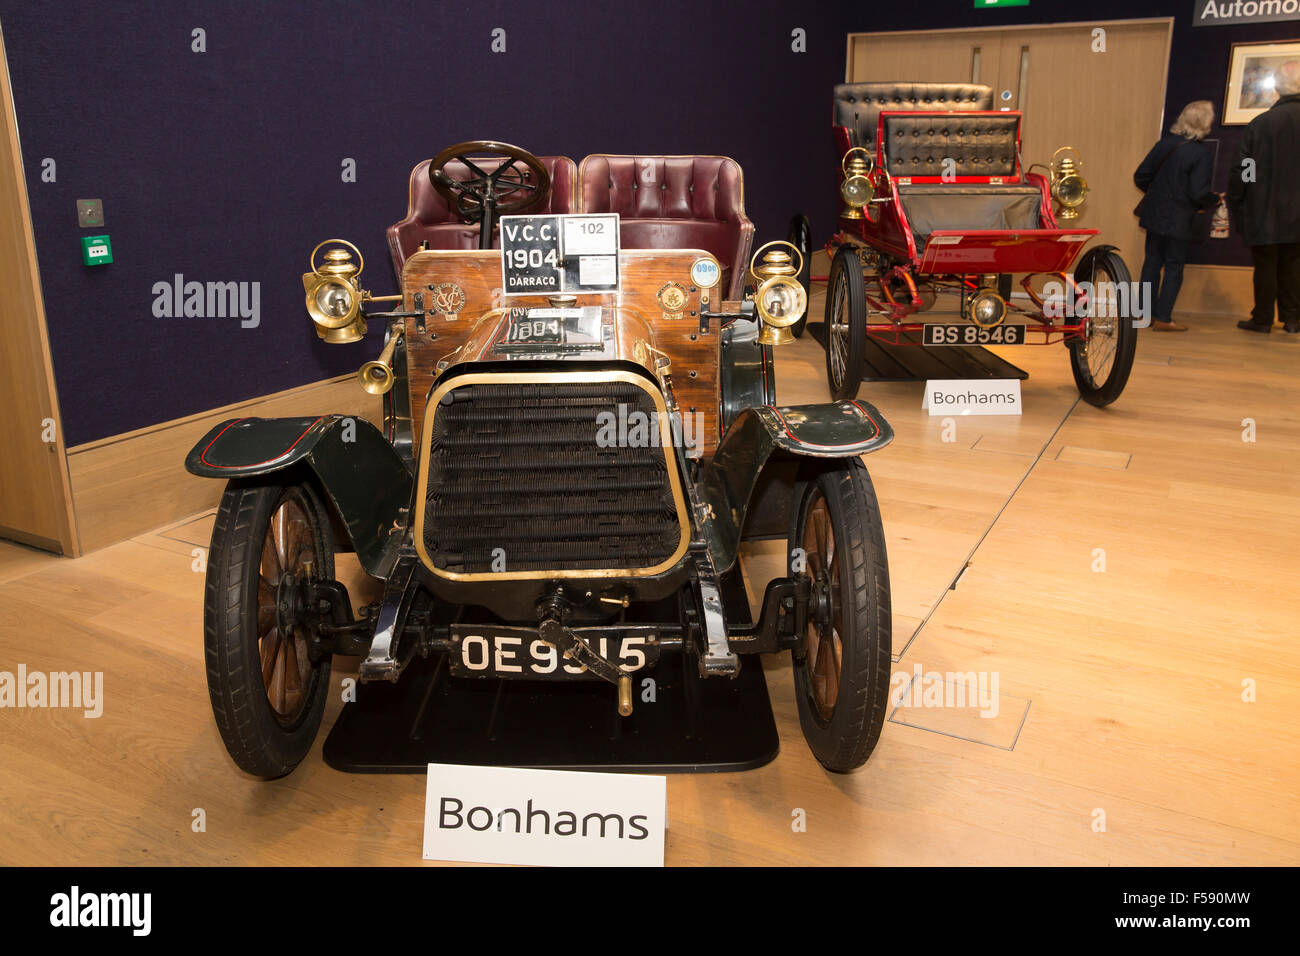 Amazing Veteran Cars For Sale Uk Inspiration - Classic Cars Ideas ...